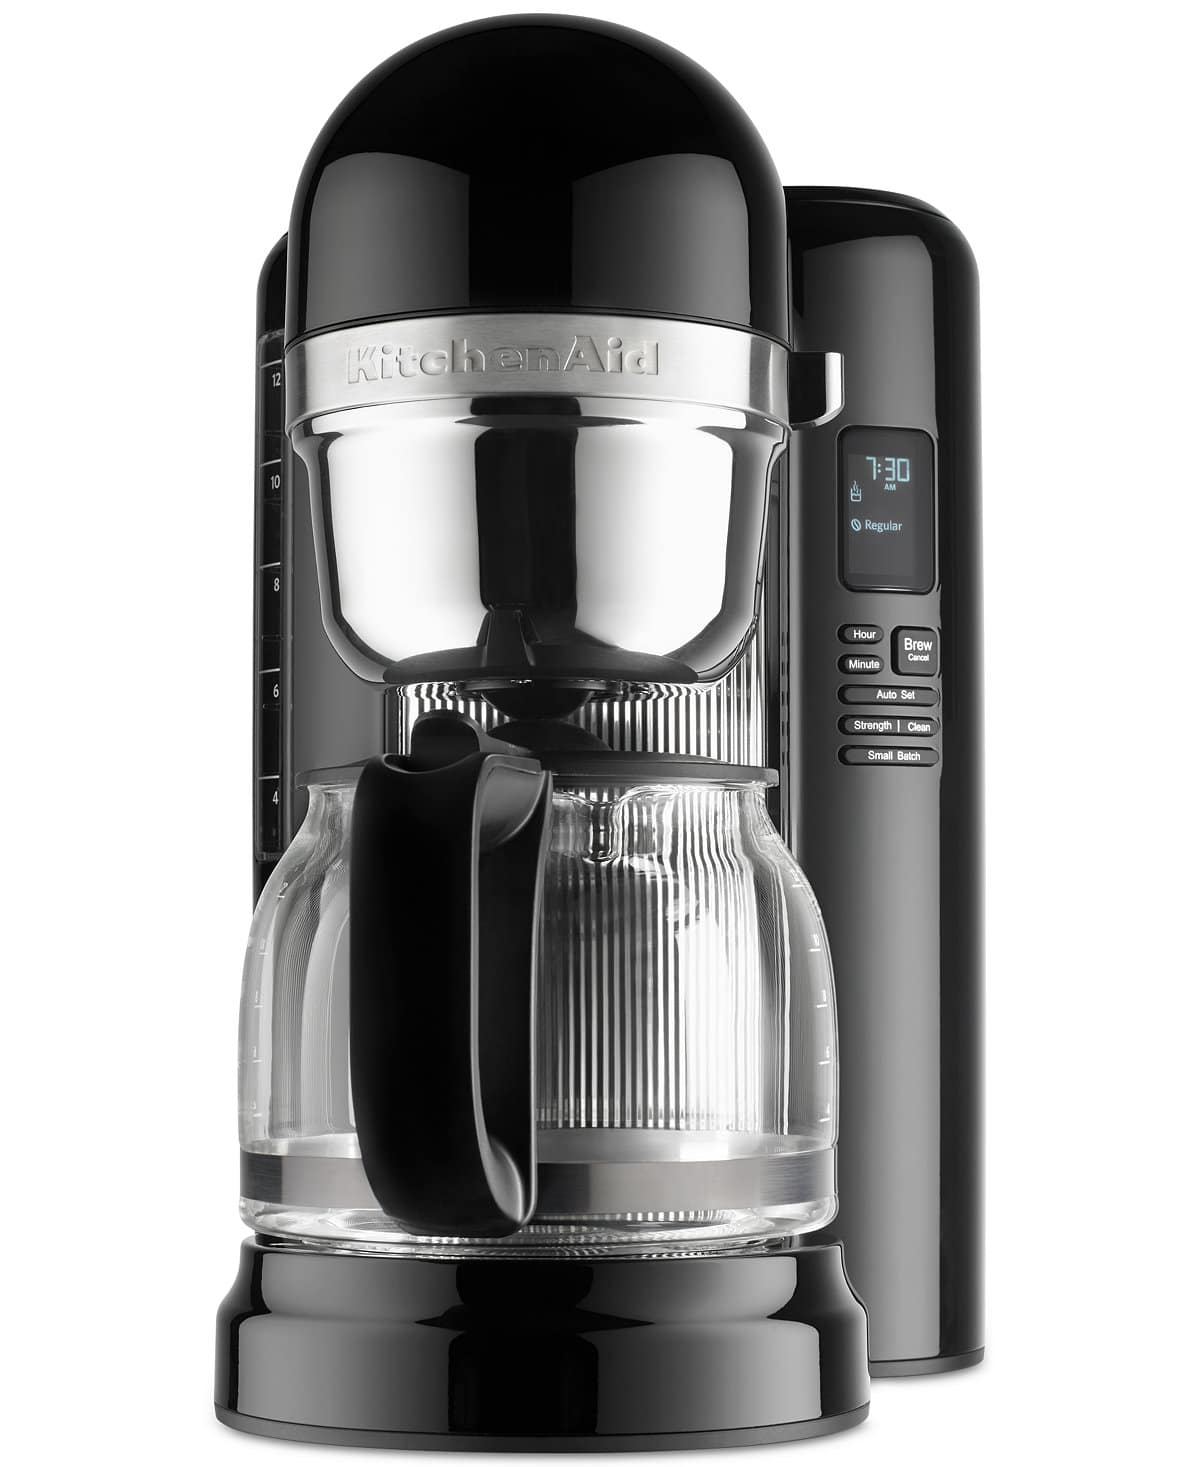 Kitchenaid 12-Cup Drip Coffee Maker (KCM1204OB) $55 after rebate + free instore pickup at Macys